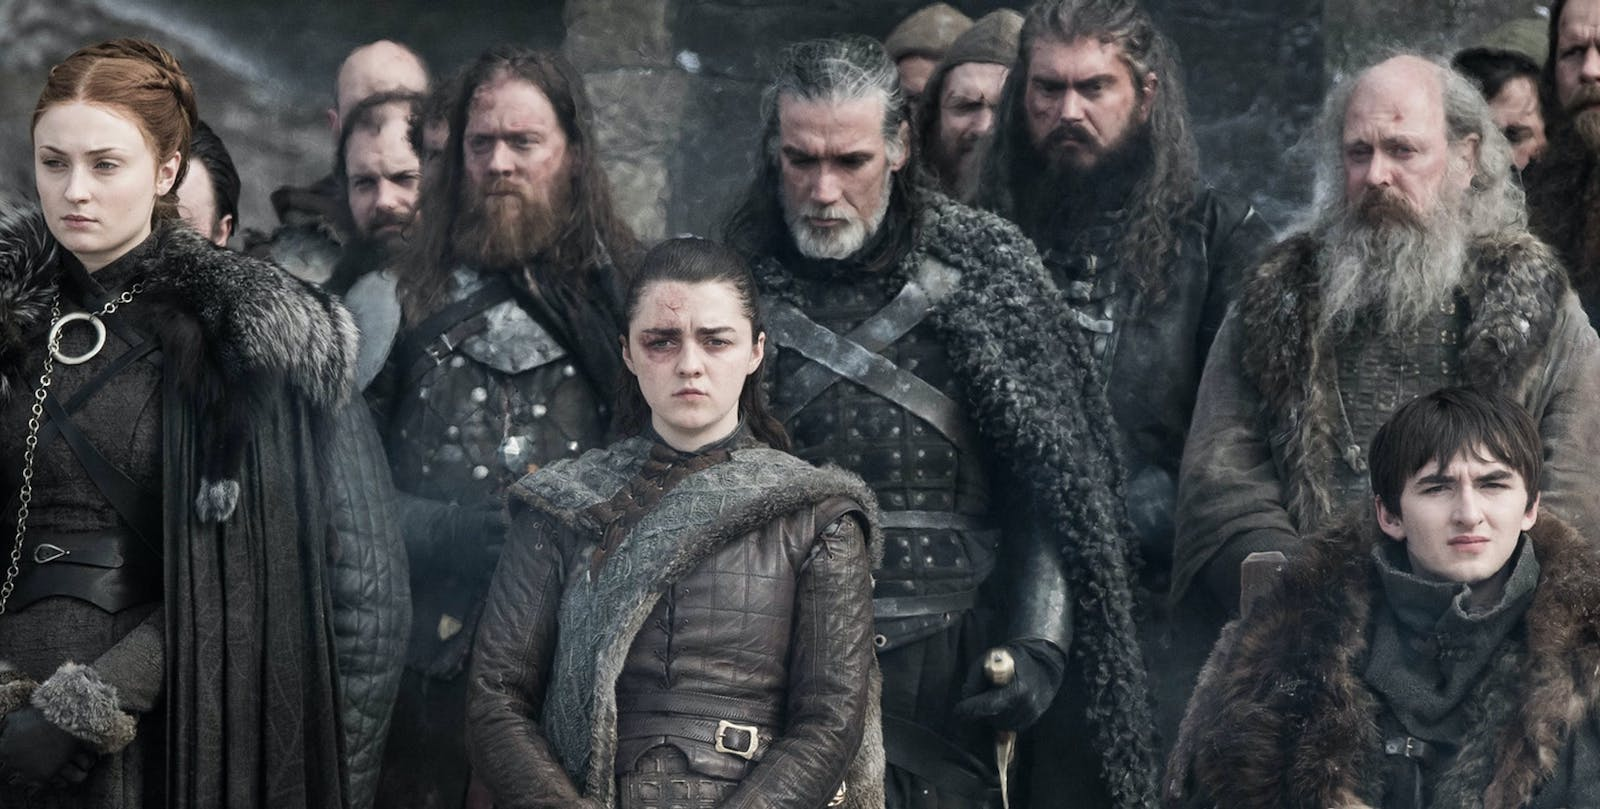 """Game of Thrones Season 8 Episode 4: """"The Last of The Stark"""" Review"""